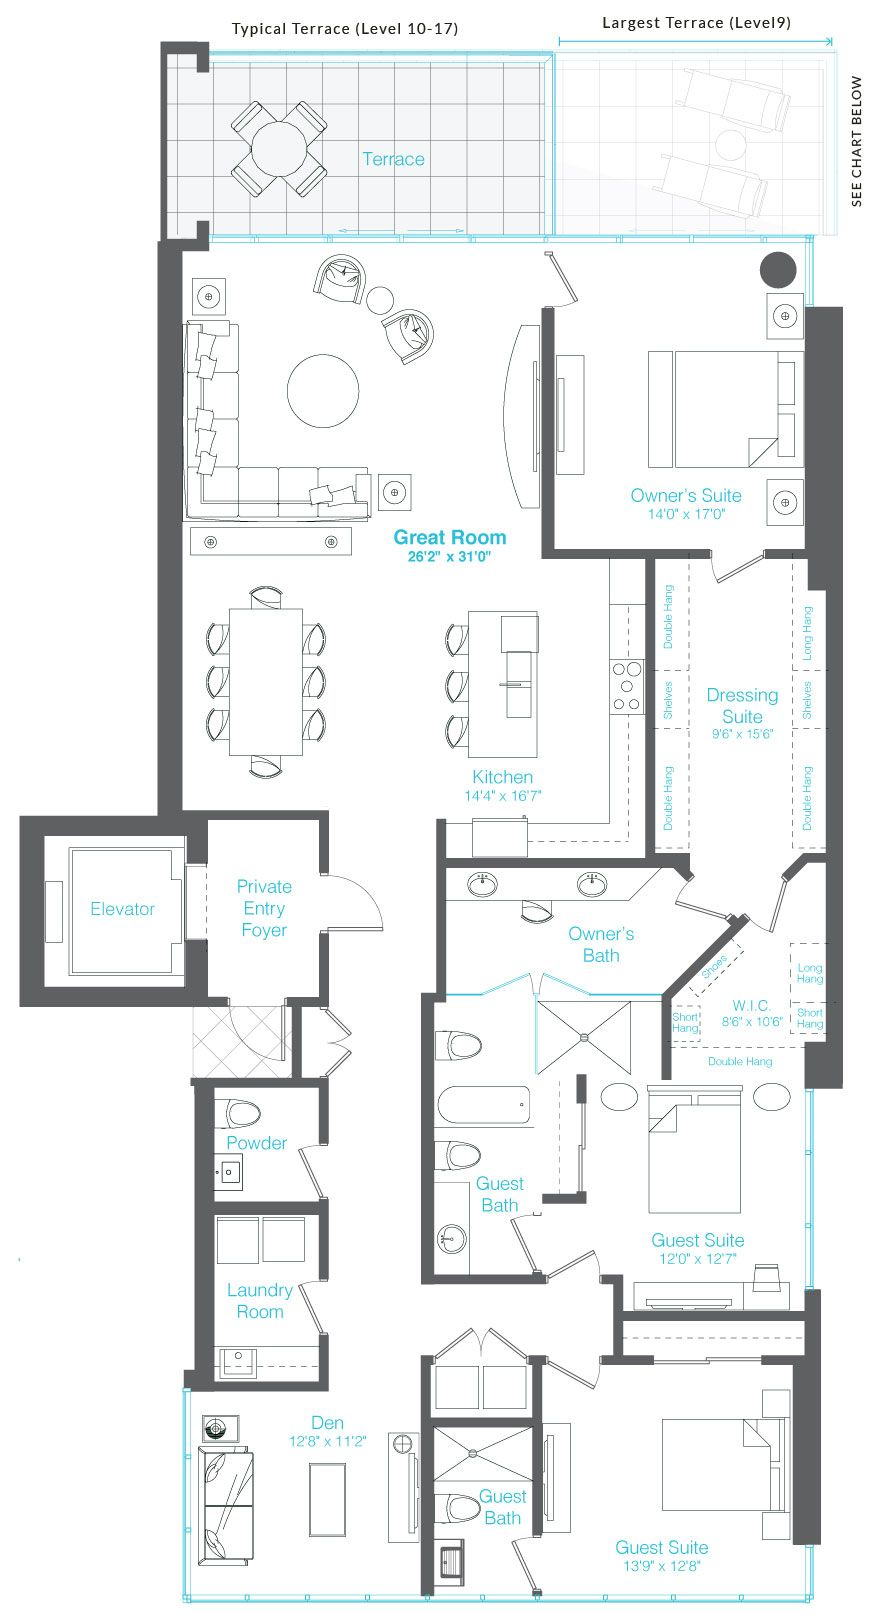 vue sarasota bay residence floor plan a features 3